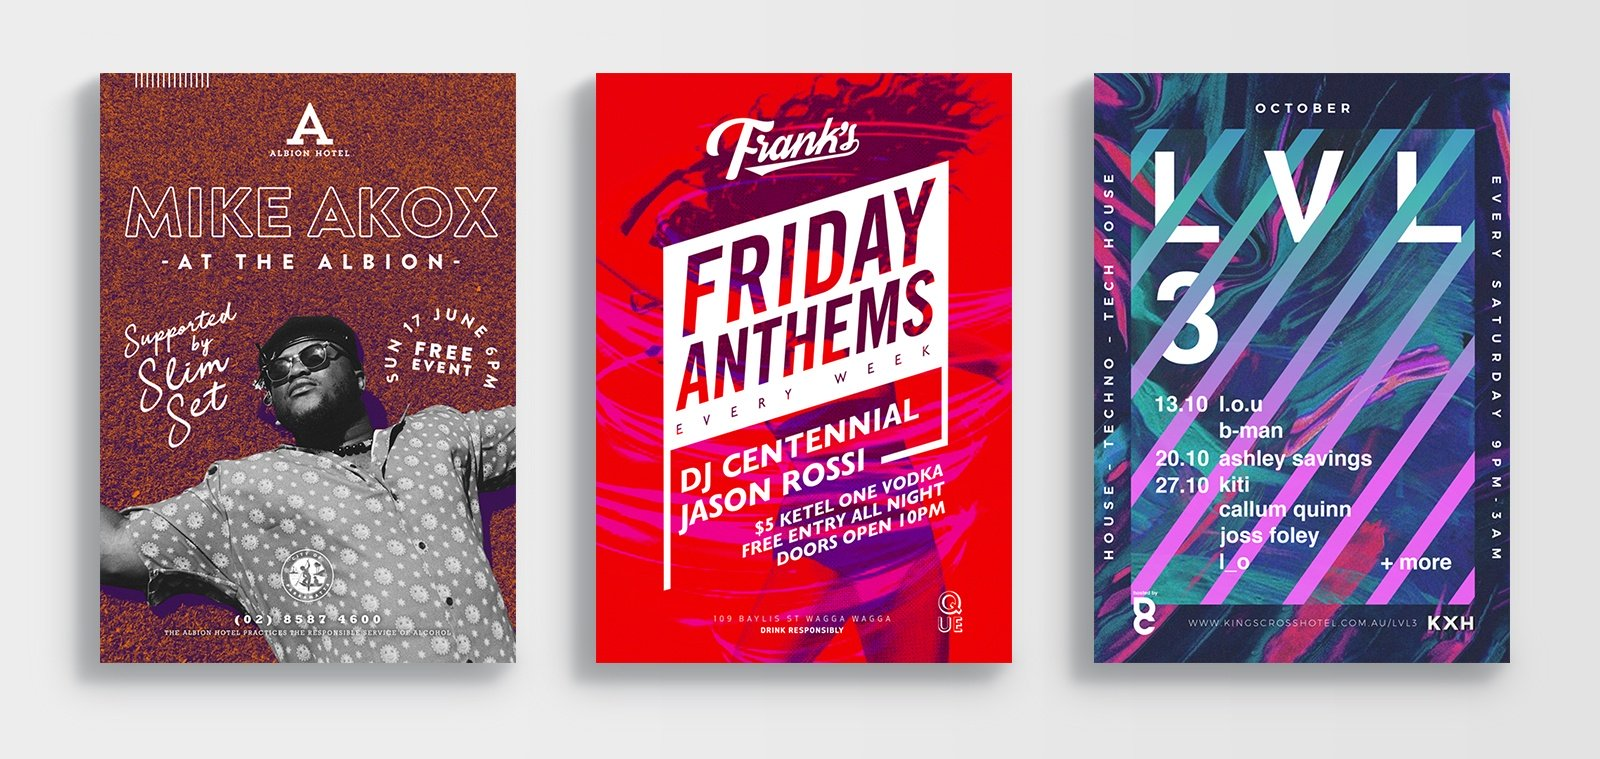 Event posters designed by Sydney Design Social